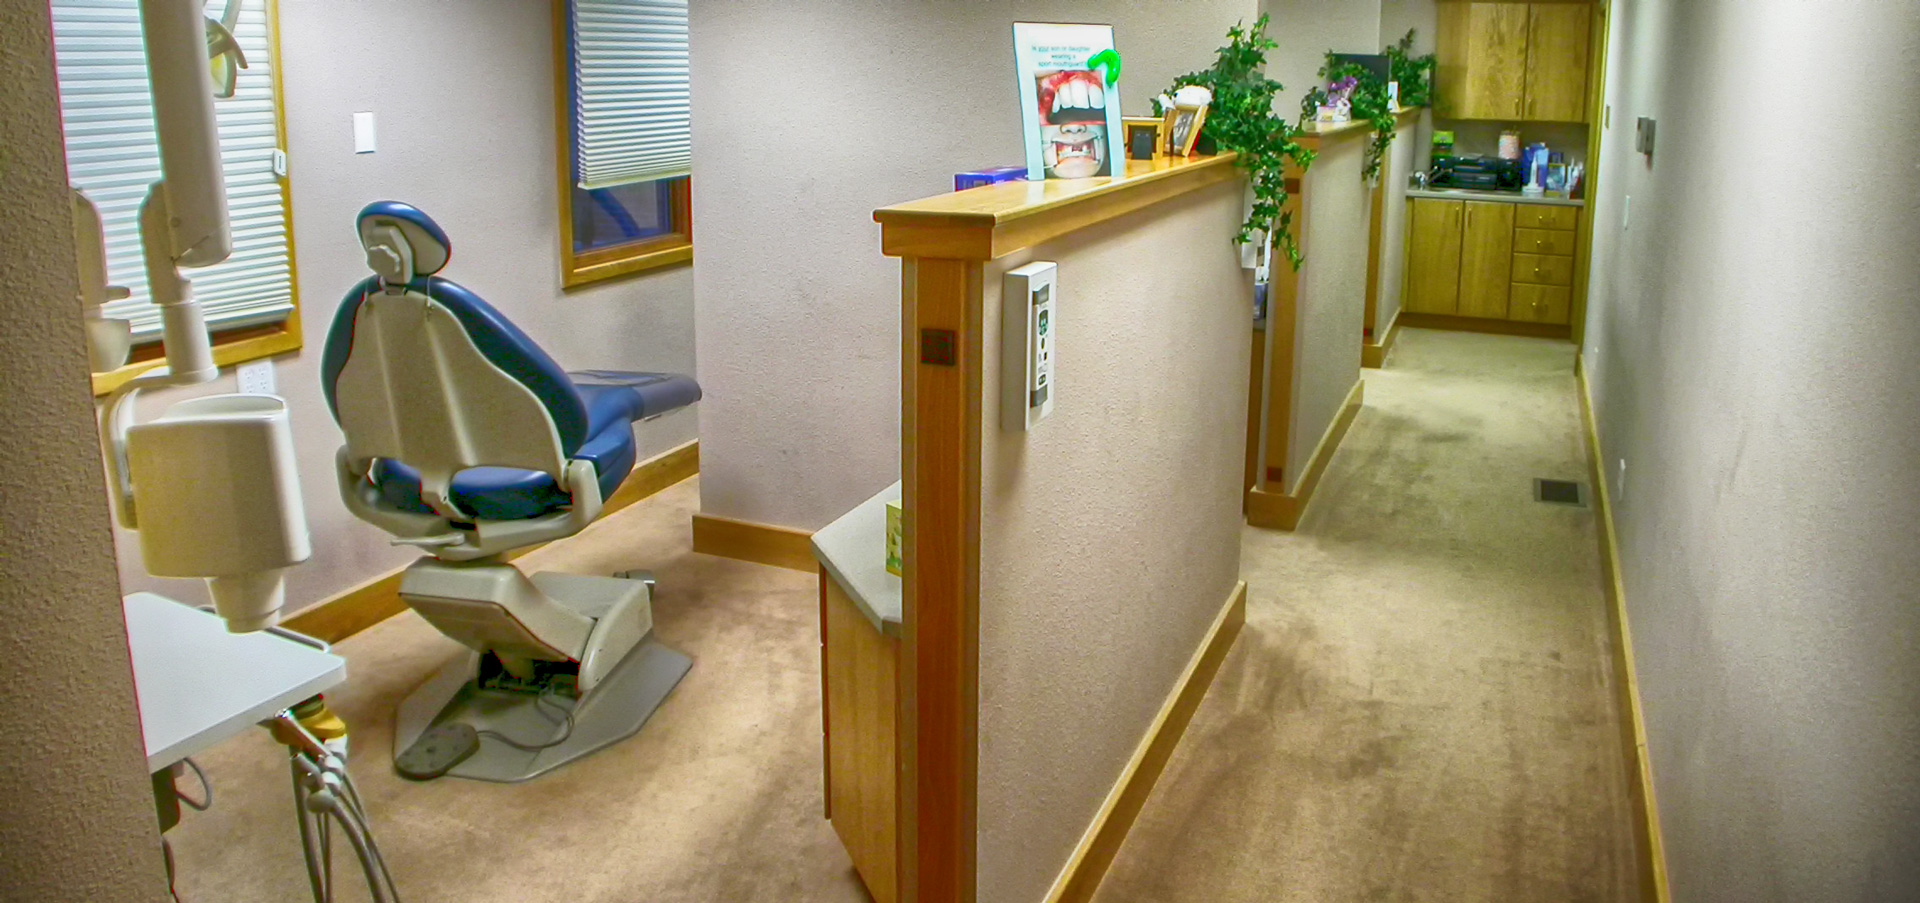 commercial remodeling - Poehlmann Construction